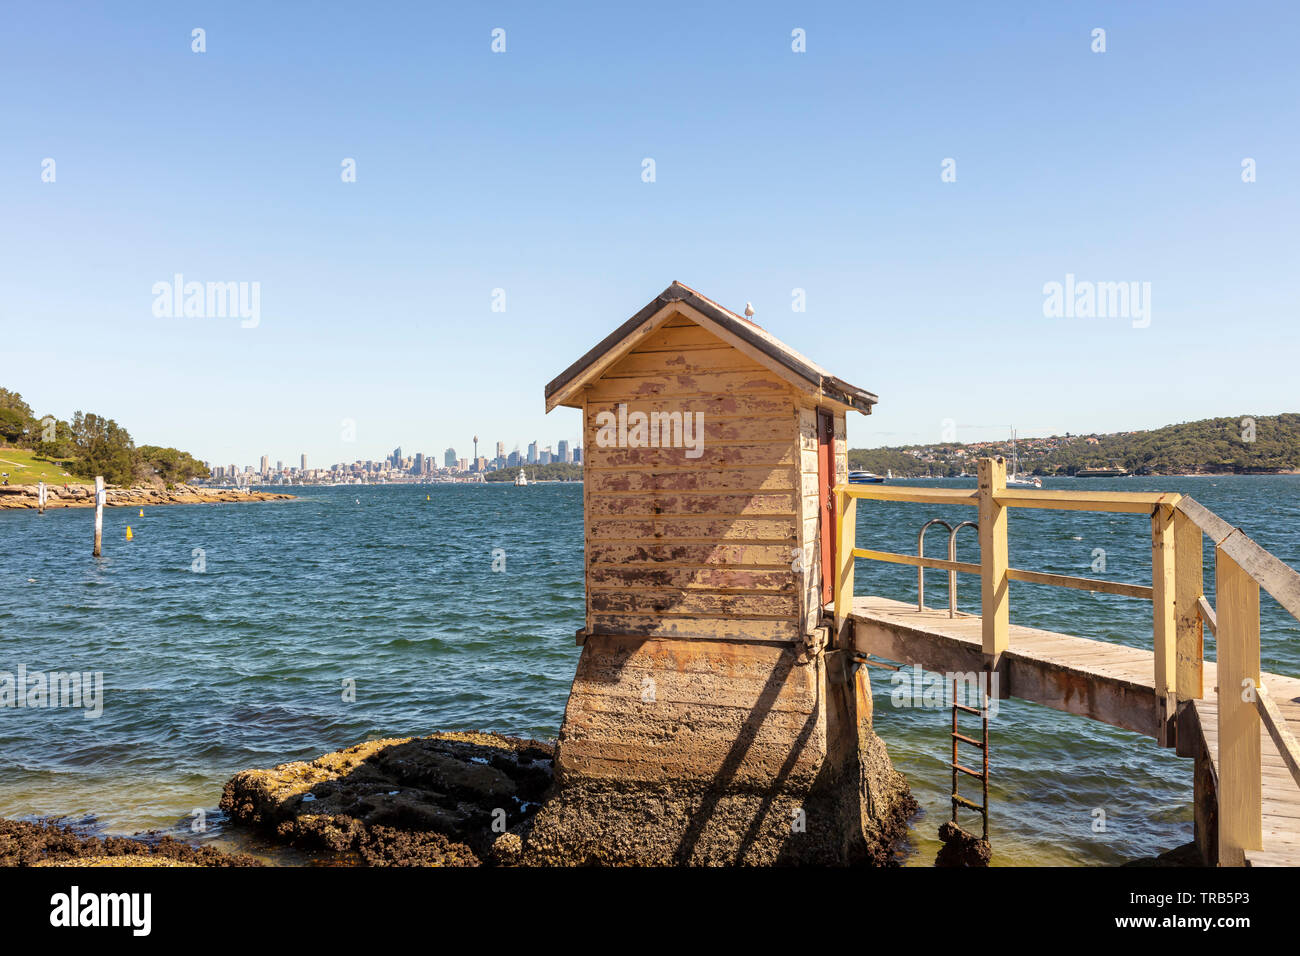 Vintage beach hut with peeling paint and small jetty on Camp Cove beach near Sydney, Australia. - Stock Image